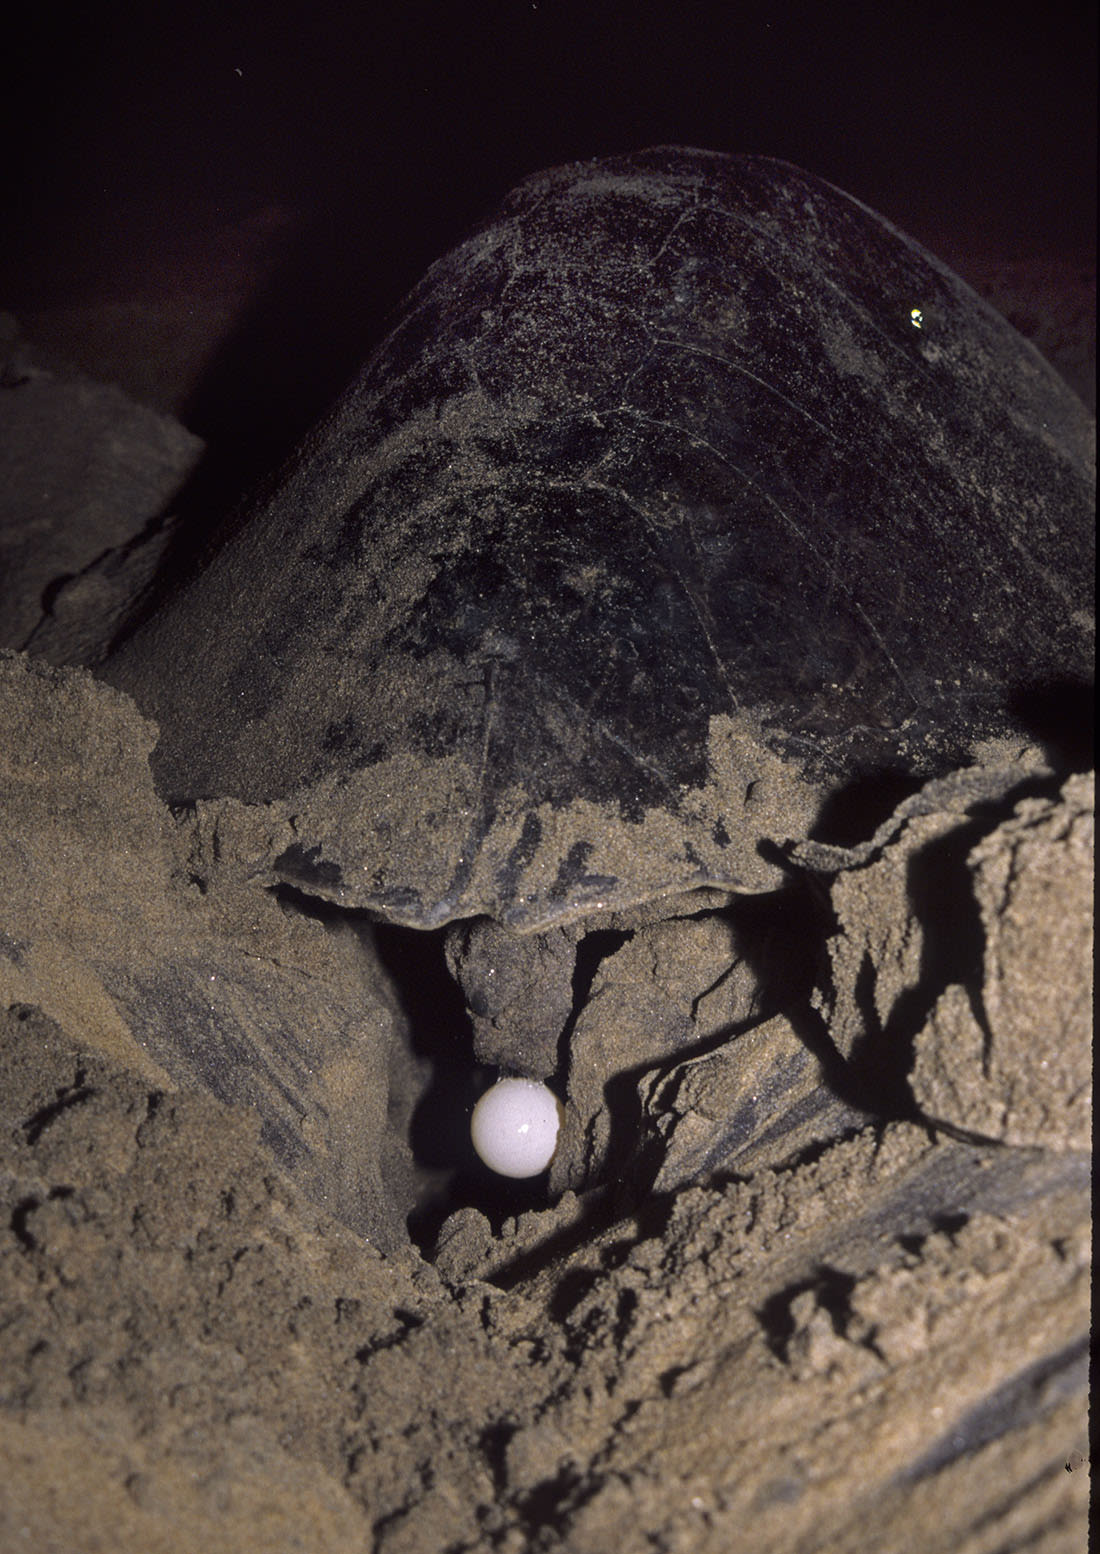 The turtle's eggs are shaped like golf balls and have a leathery texture that allows them to dent without breaking when they drop. Photo: Dhritiman Mukherjee